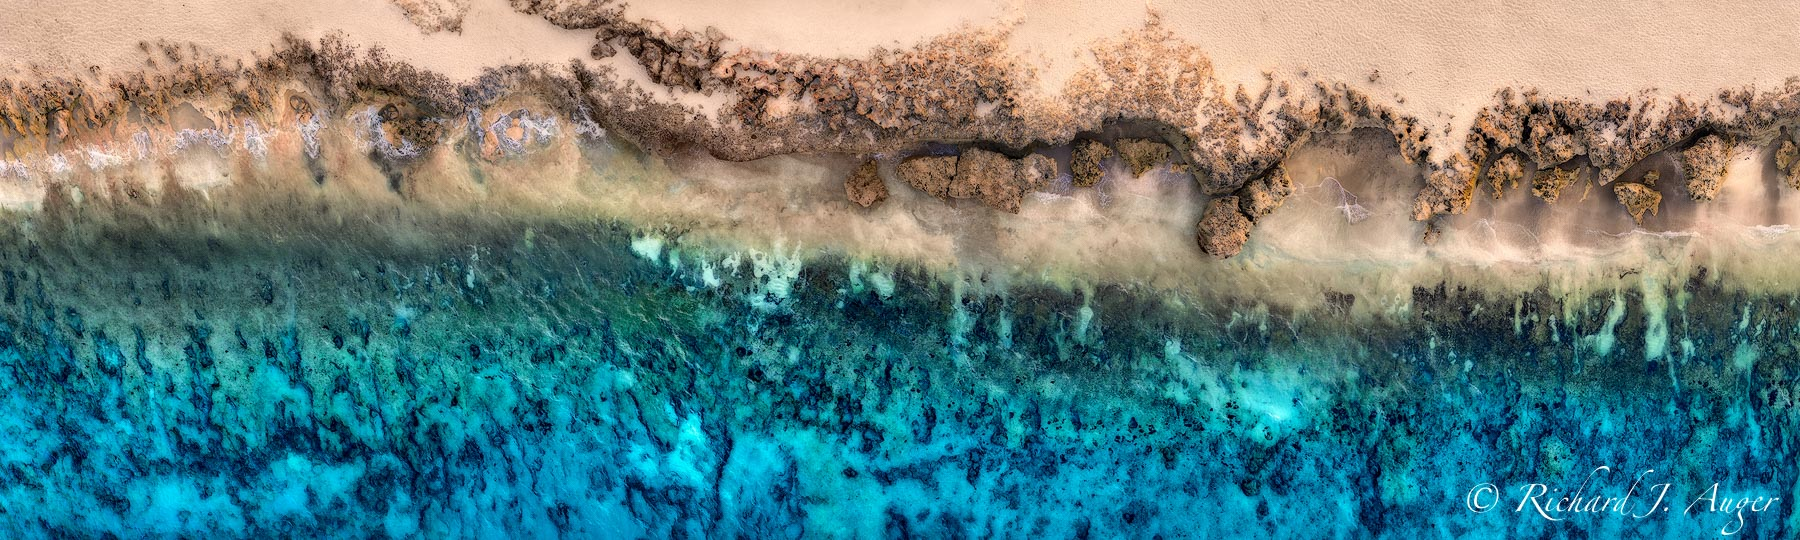 House of Refuge, Reef, Ocean, Beach, Aerial, Drone Photography, Richard Auger